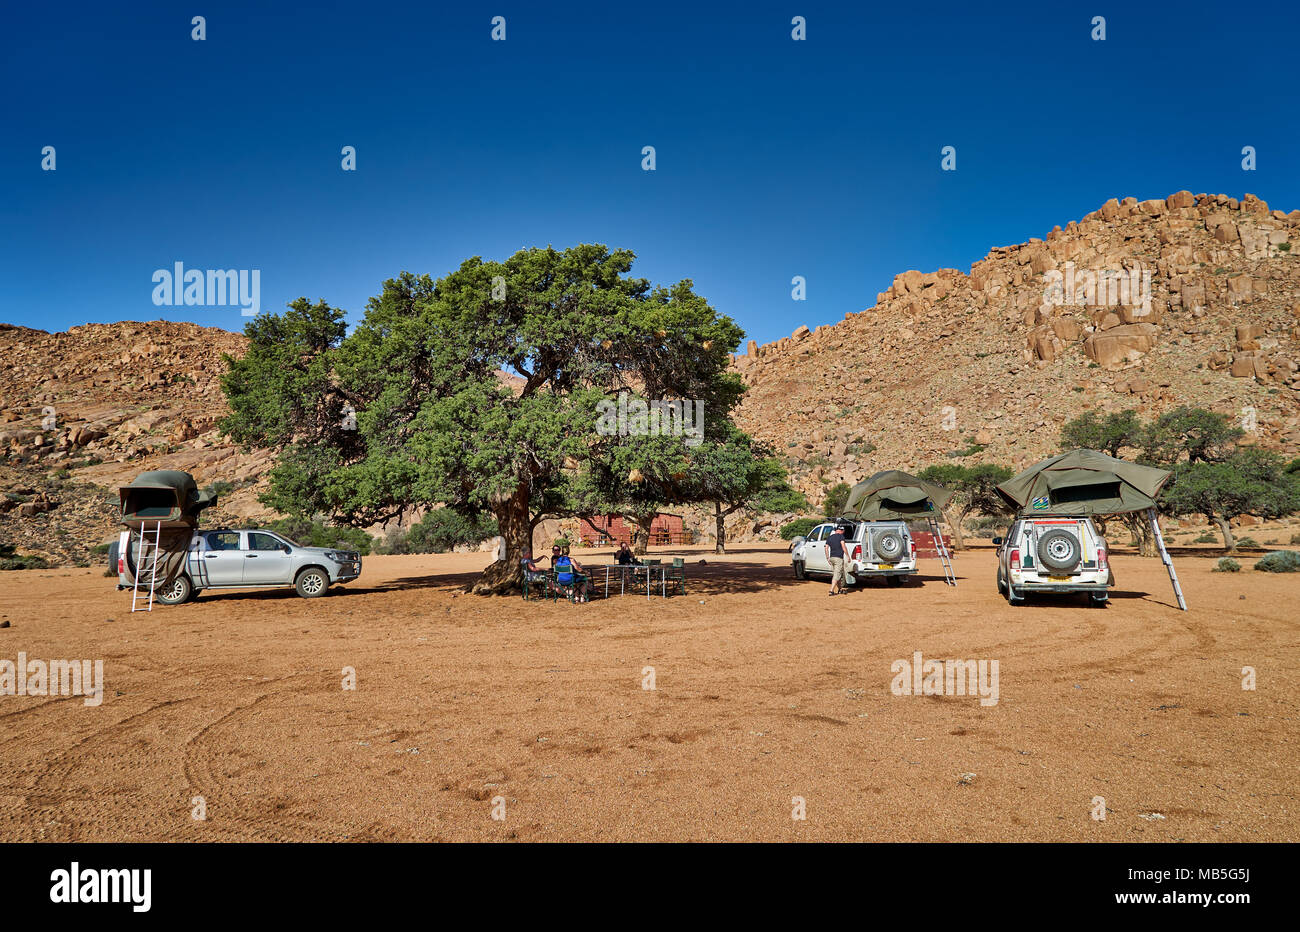 three cars of self-drive tourists camping under a tree in tranquil landscape on Farm Namtib, Namibia, Africa - Stock Image